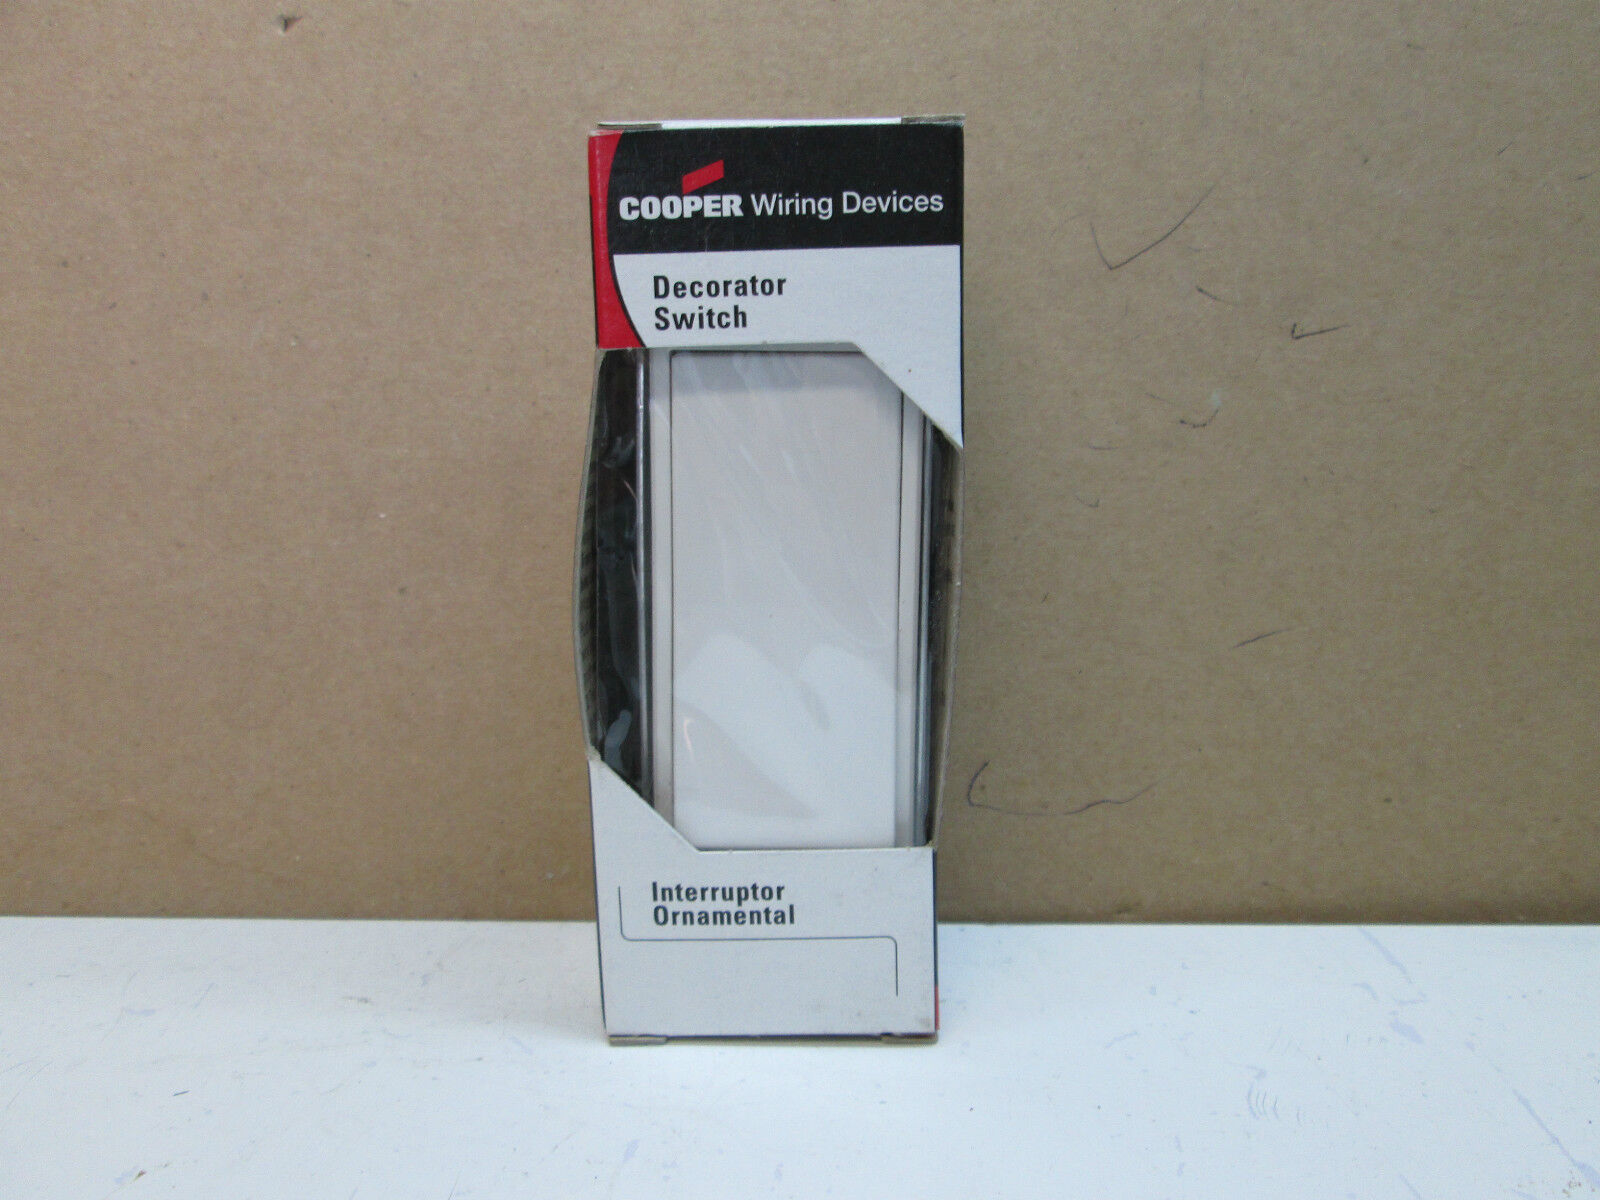 Cooper Wiring Devices 7503w White 15a 3 Way Ac Quiet Decorator Switch Diagram Norton Secured Powered By Verisign